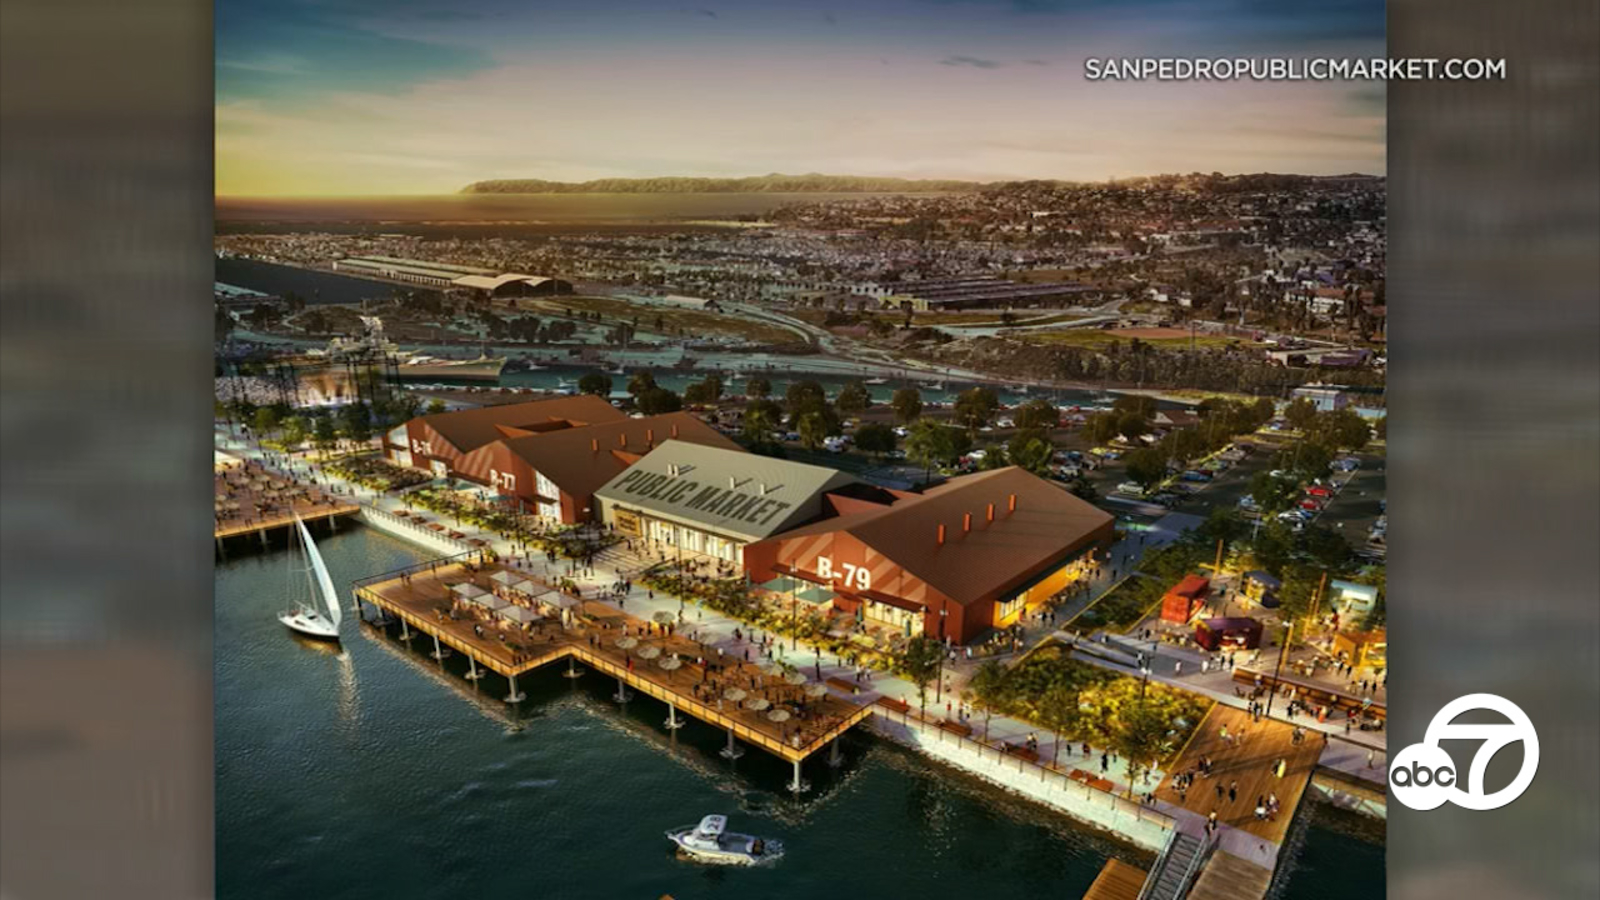 Eyewitness This: Plans advance for 42-acre waterfront market in San Pedro